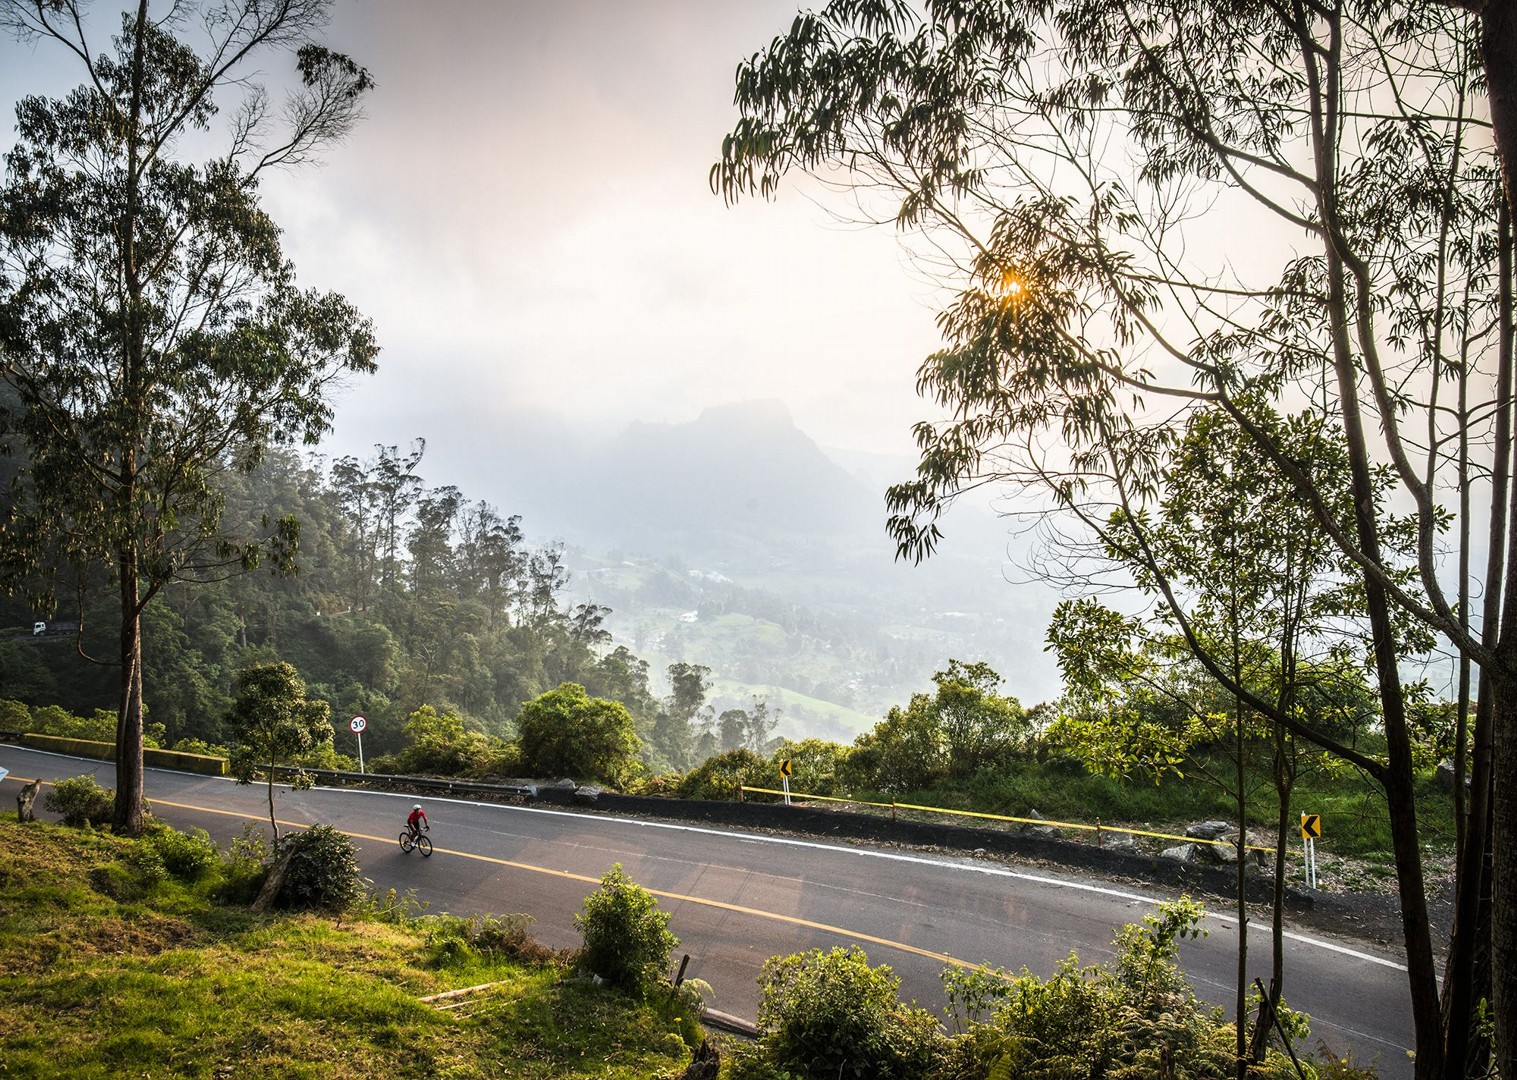 day_4_043.jpg - Colombia - Emerald Mountains - Road Cycling